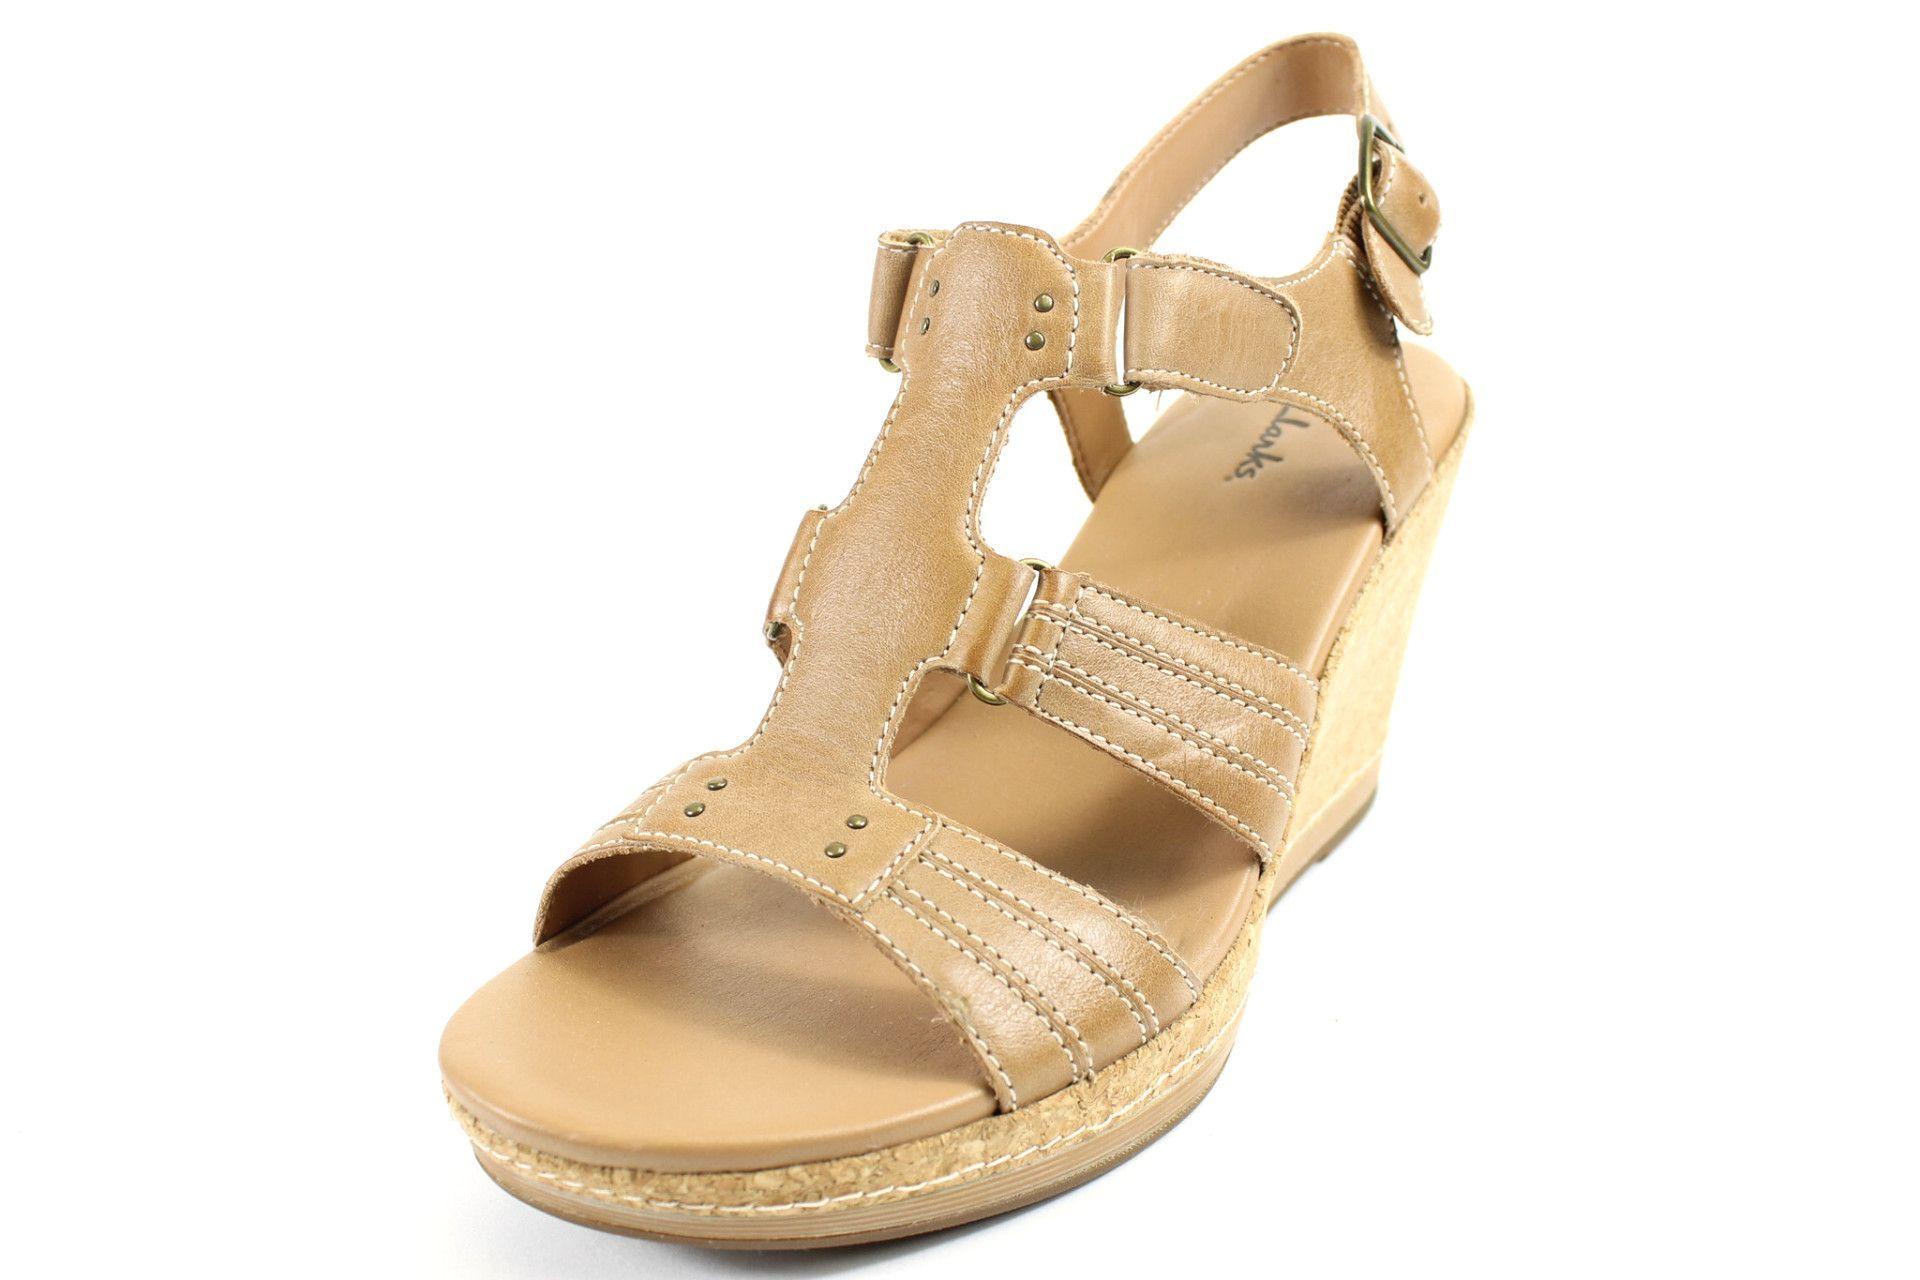 9b02d8fefc8 Clarks Caramel Pitch Wedge Sandals   Products   Wedge sandals ...